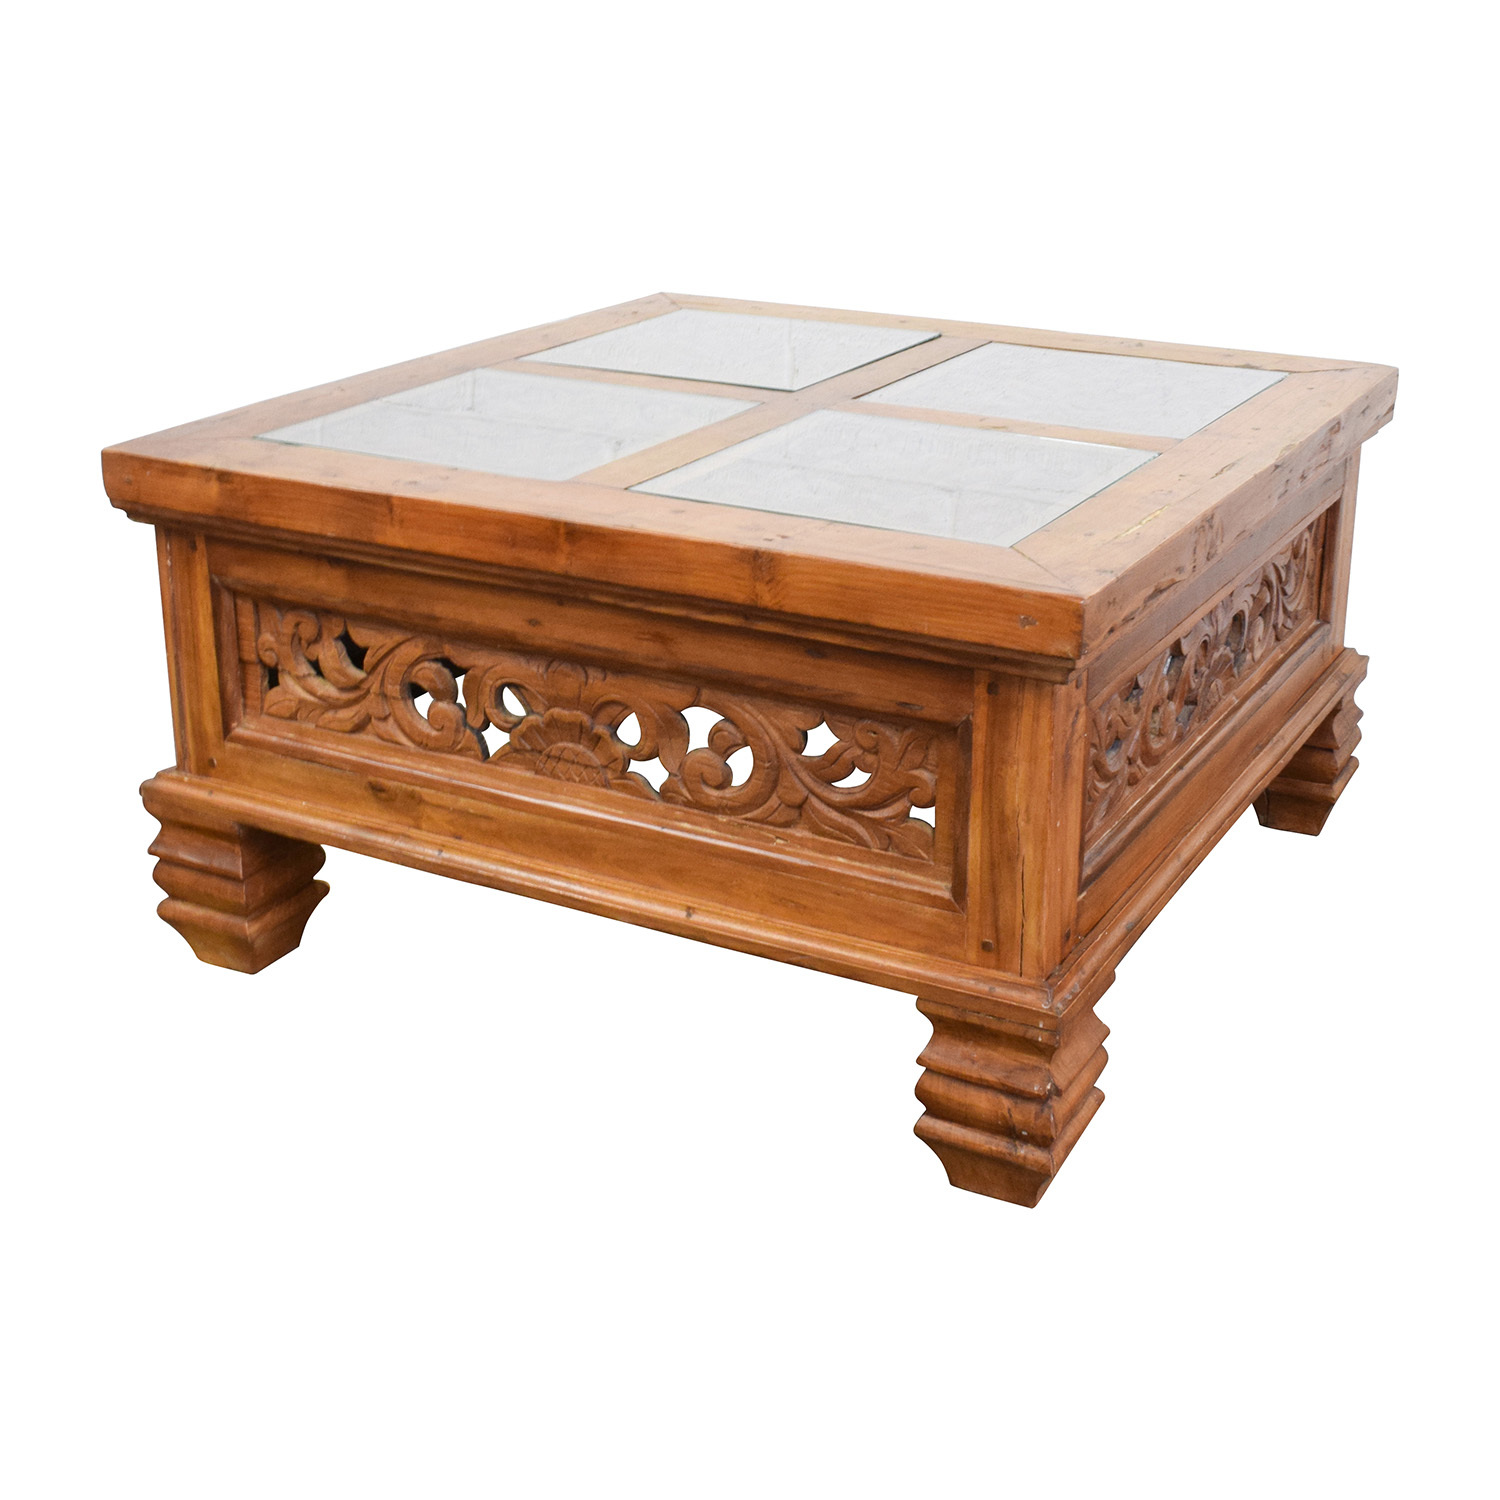 77 off teak carved coffee table with glass top tables Coffee tables glass top